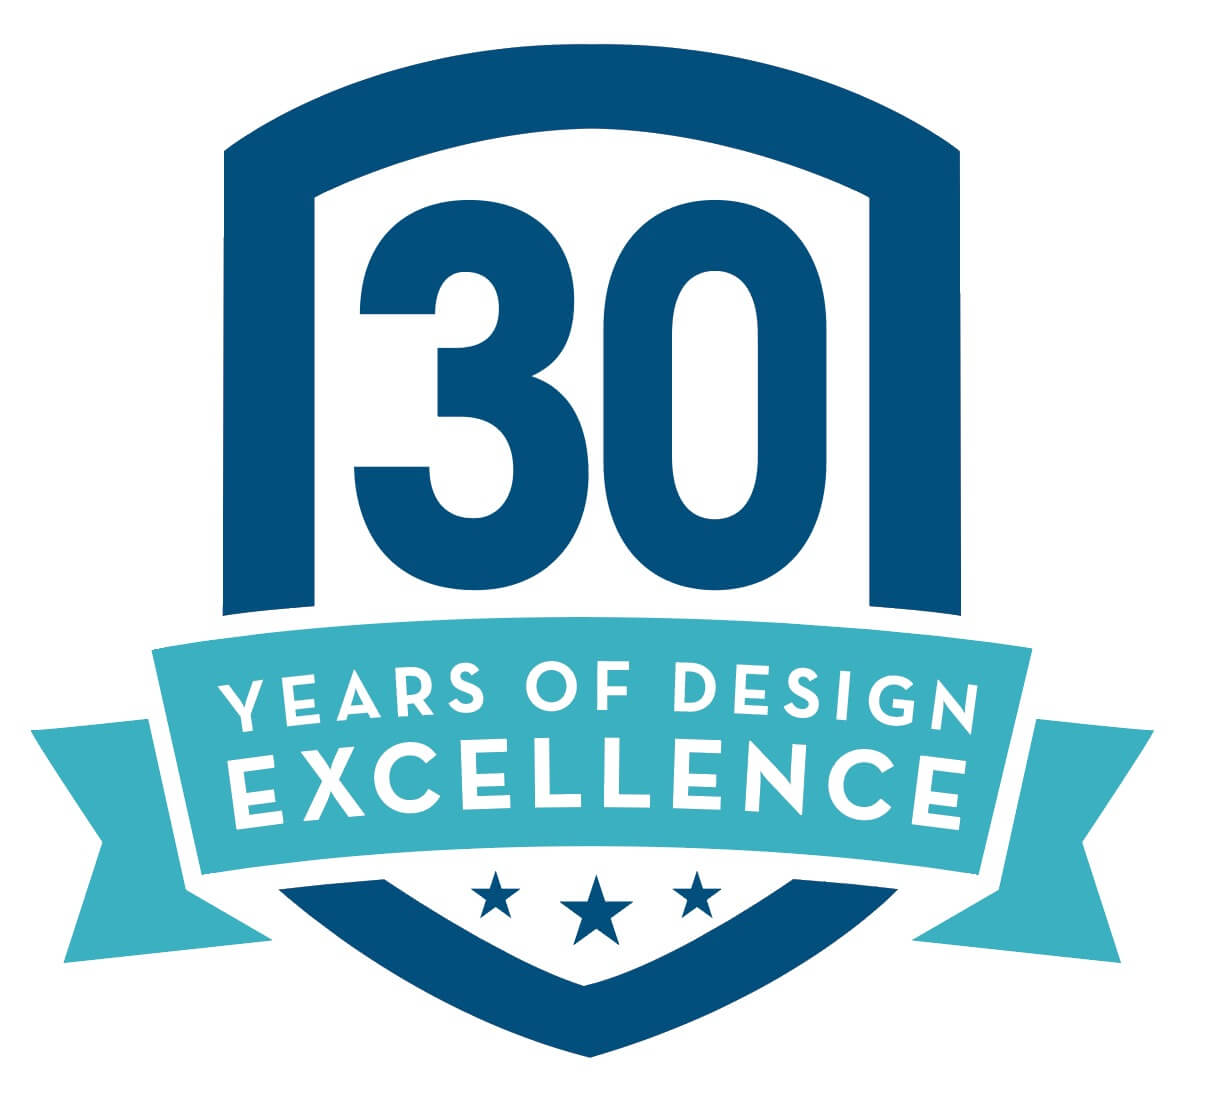 30 Years of Design Excellence